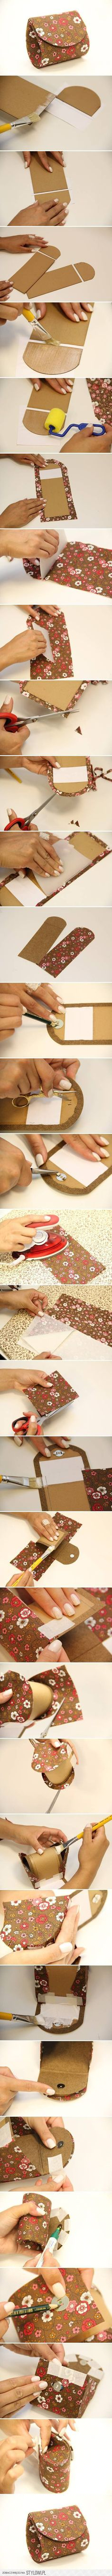 DIY Easy Money Pouch DIY Projects | UsefulDIY.com na Stylowi.pl